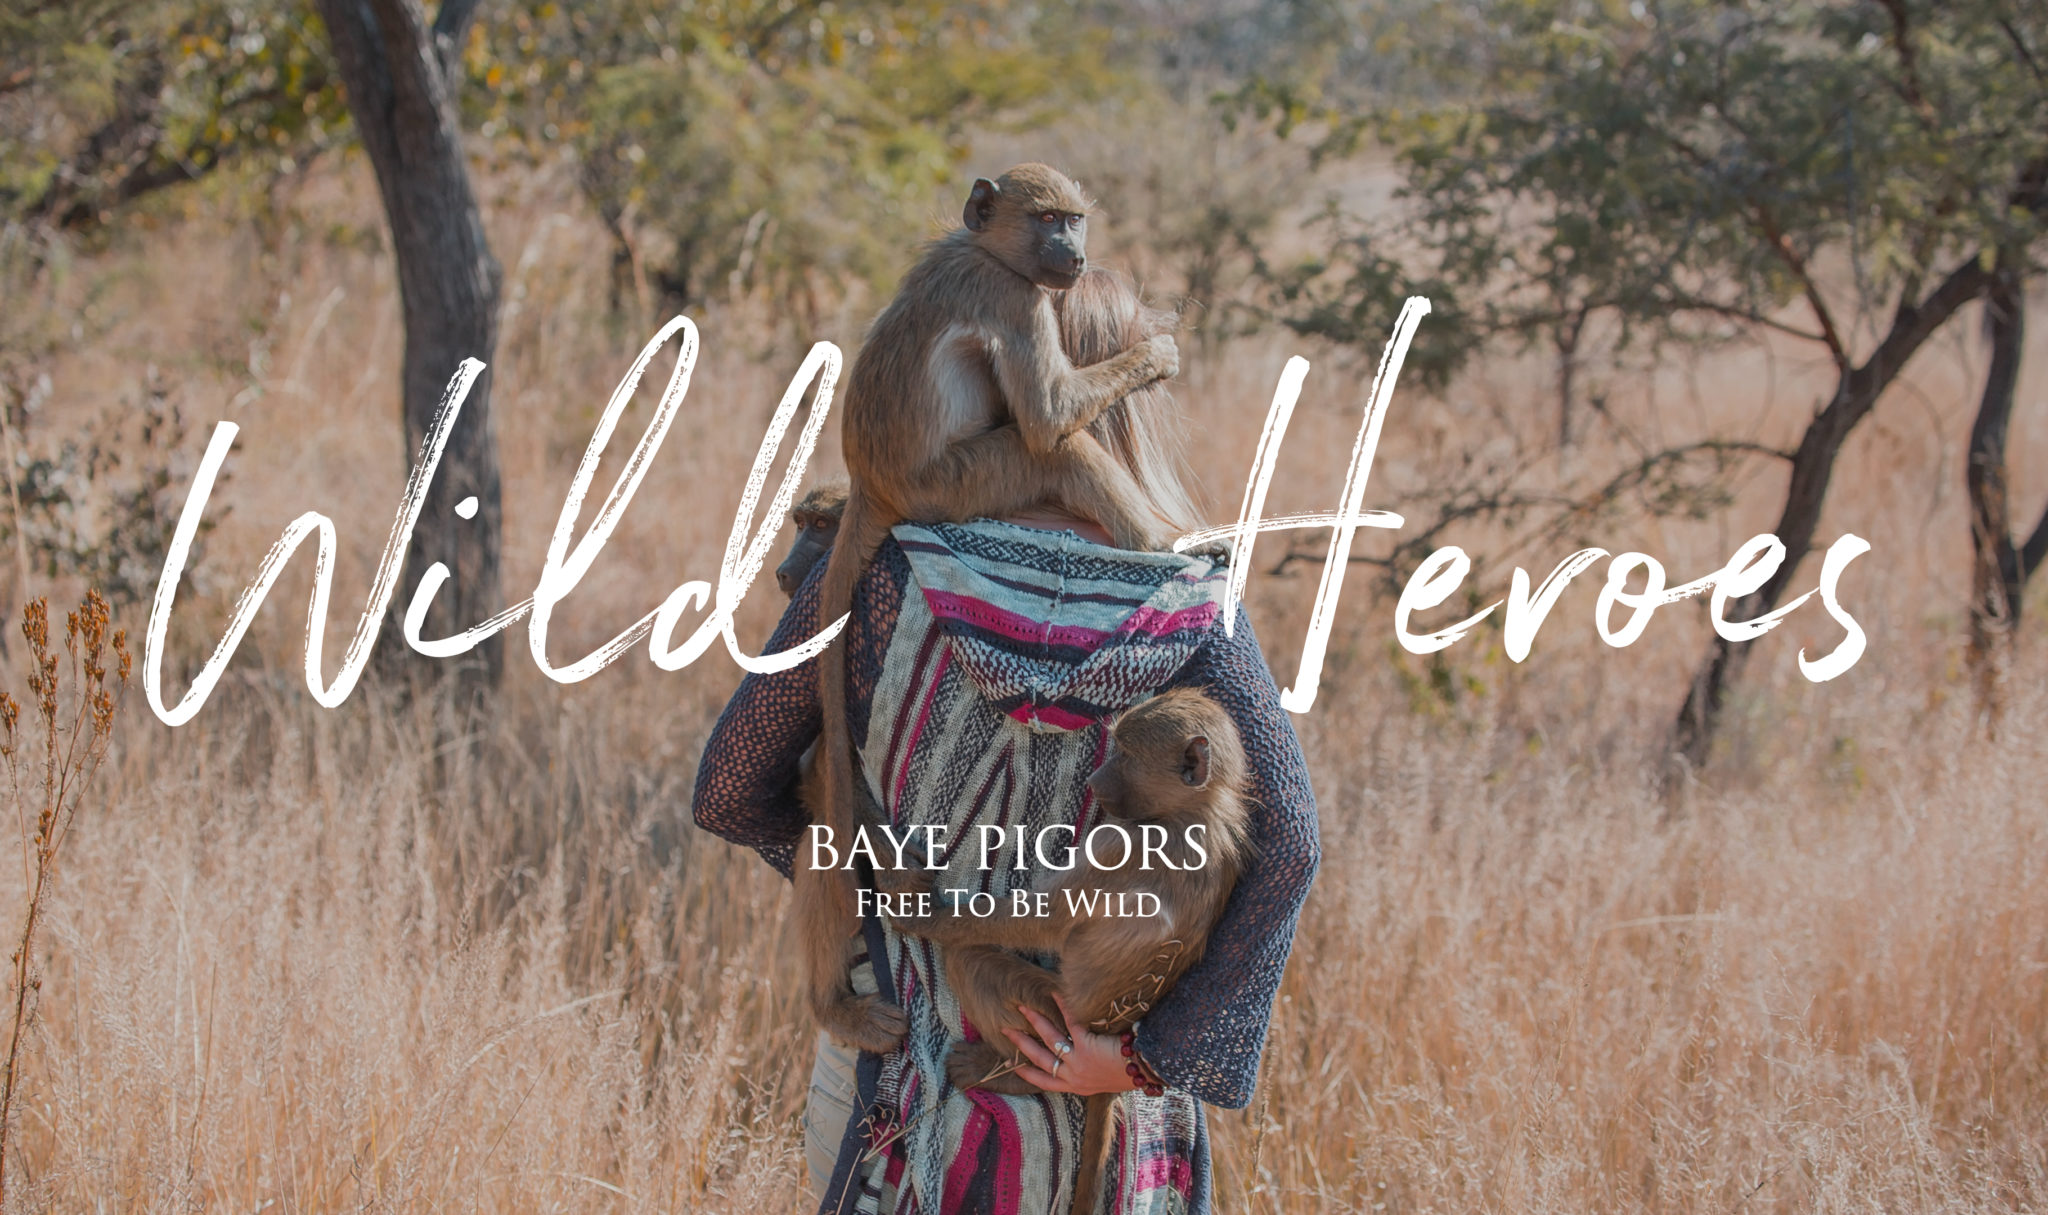 WILD HEROES Conservation Film by Marlina Moreno